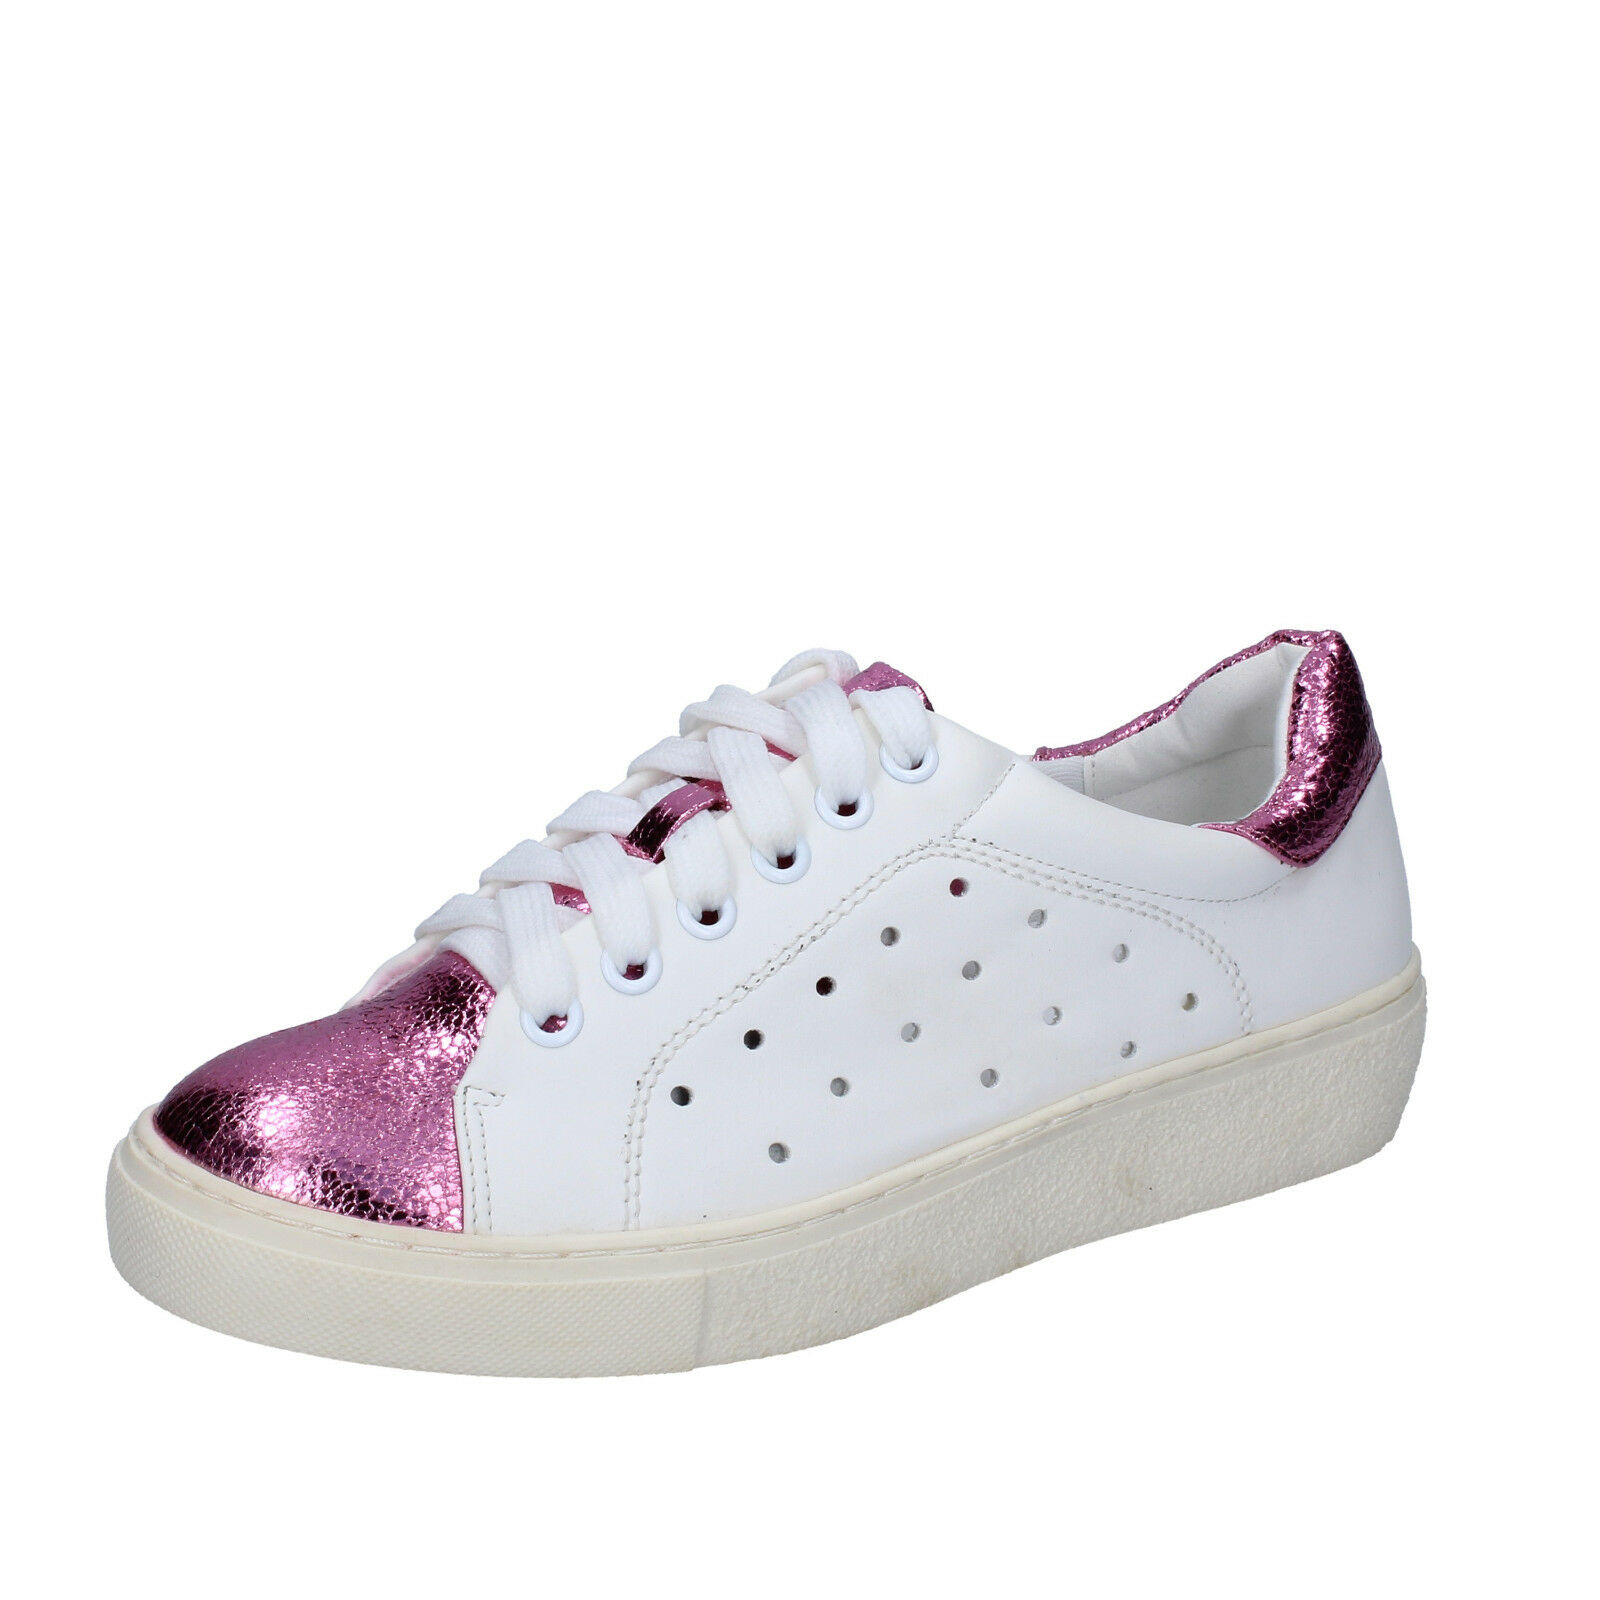 Womens shoes FRANCESCO MILANO 8 (EU 41) sneakers white pink leather BS78-41